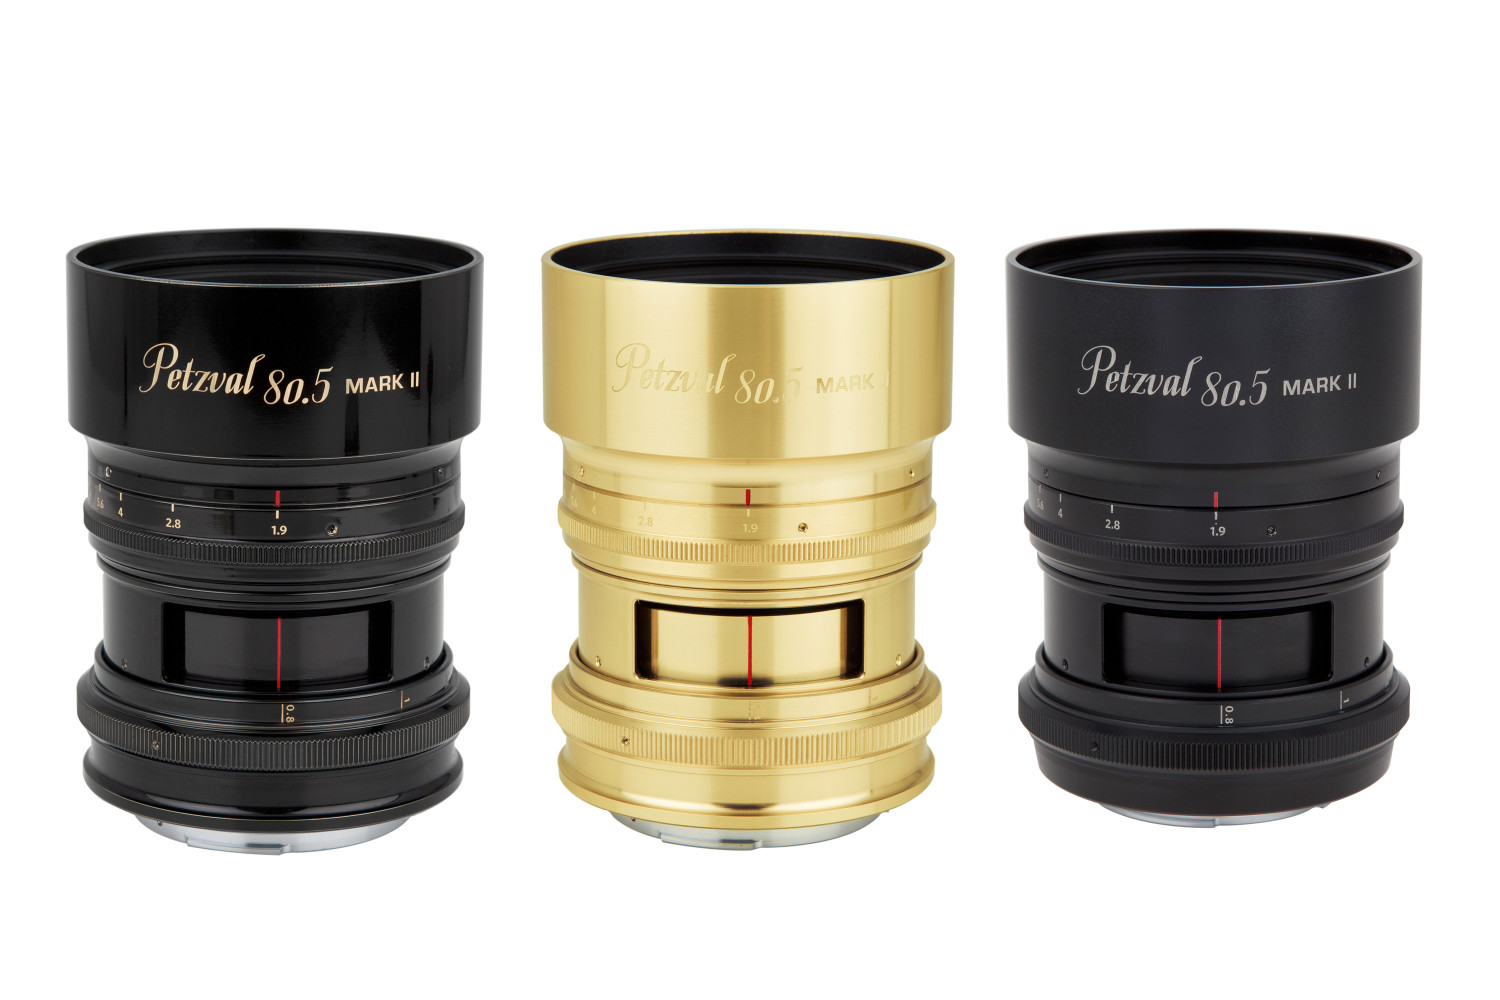 New Petzval 80.5 f/1.9 MKII Art Lens Basic Edition Canon EF